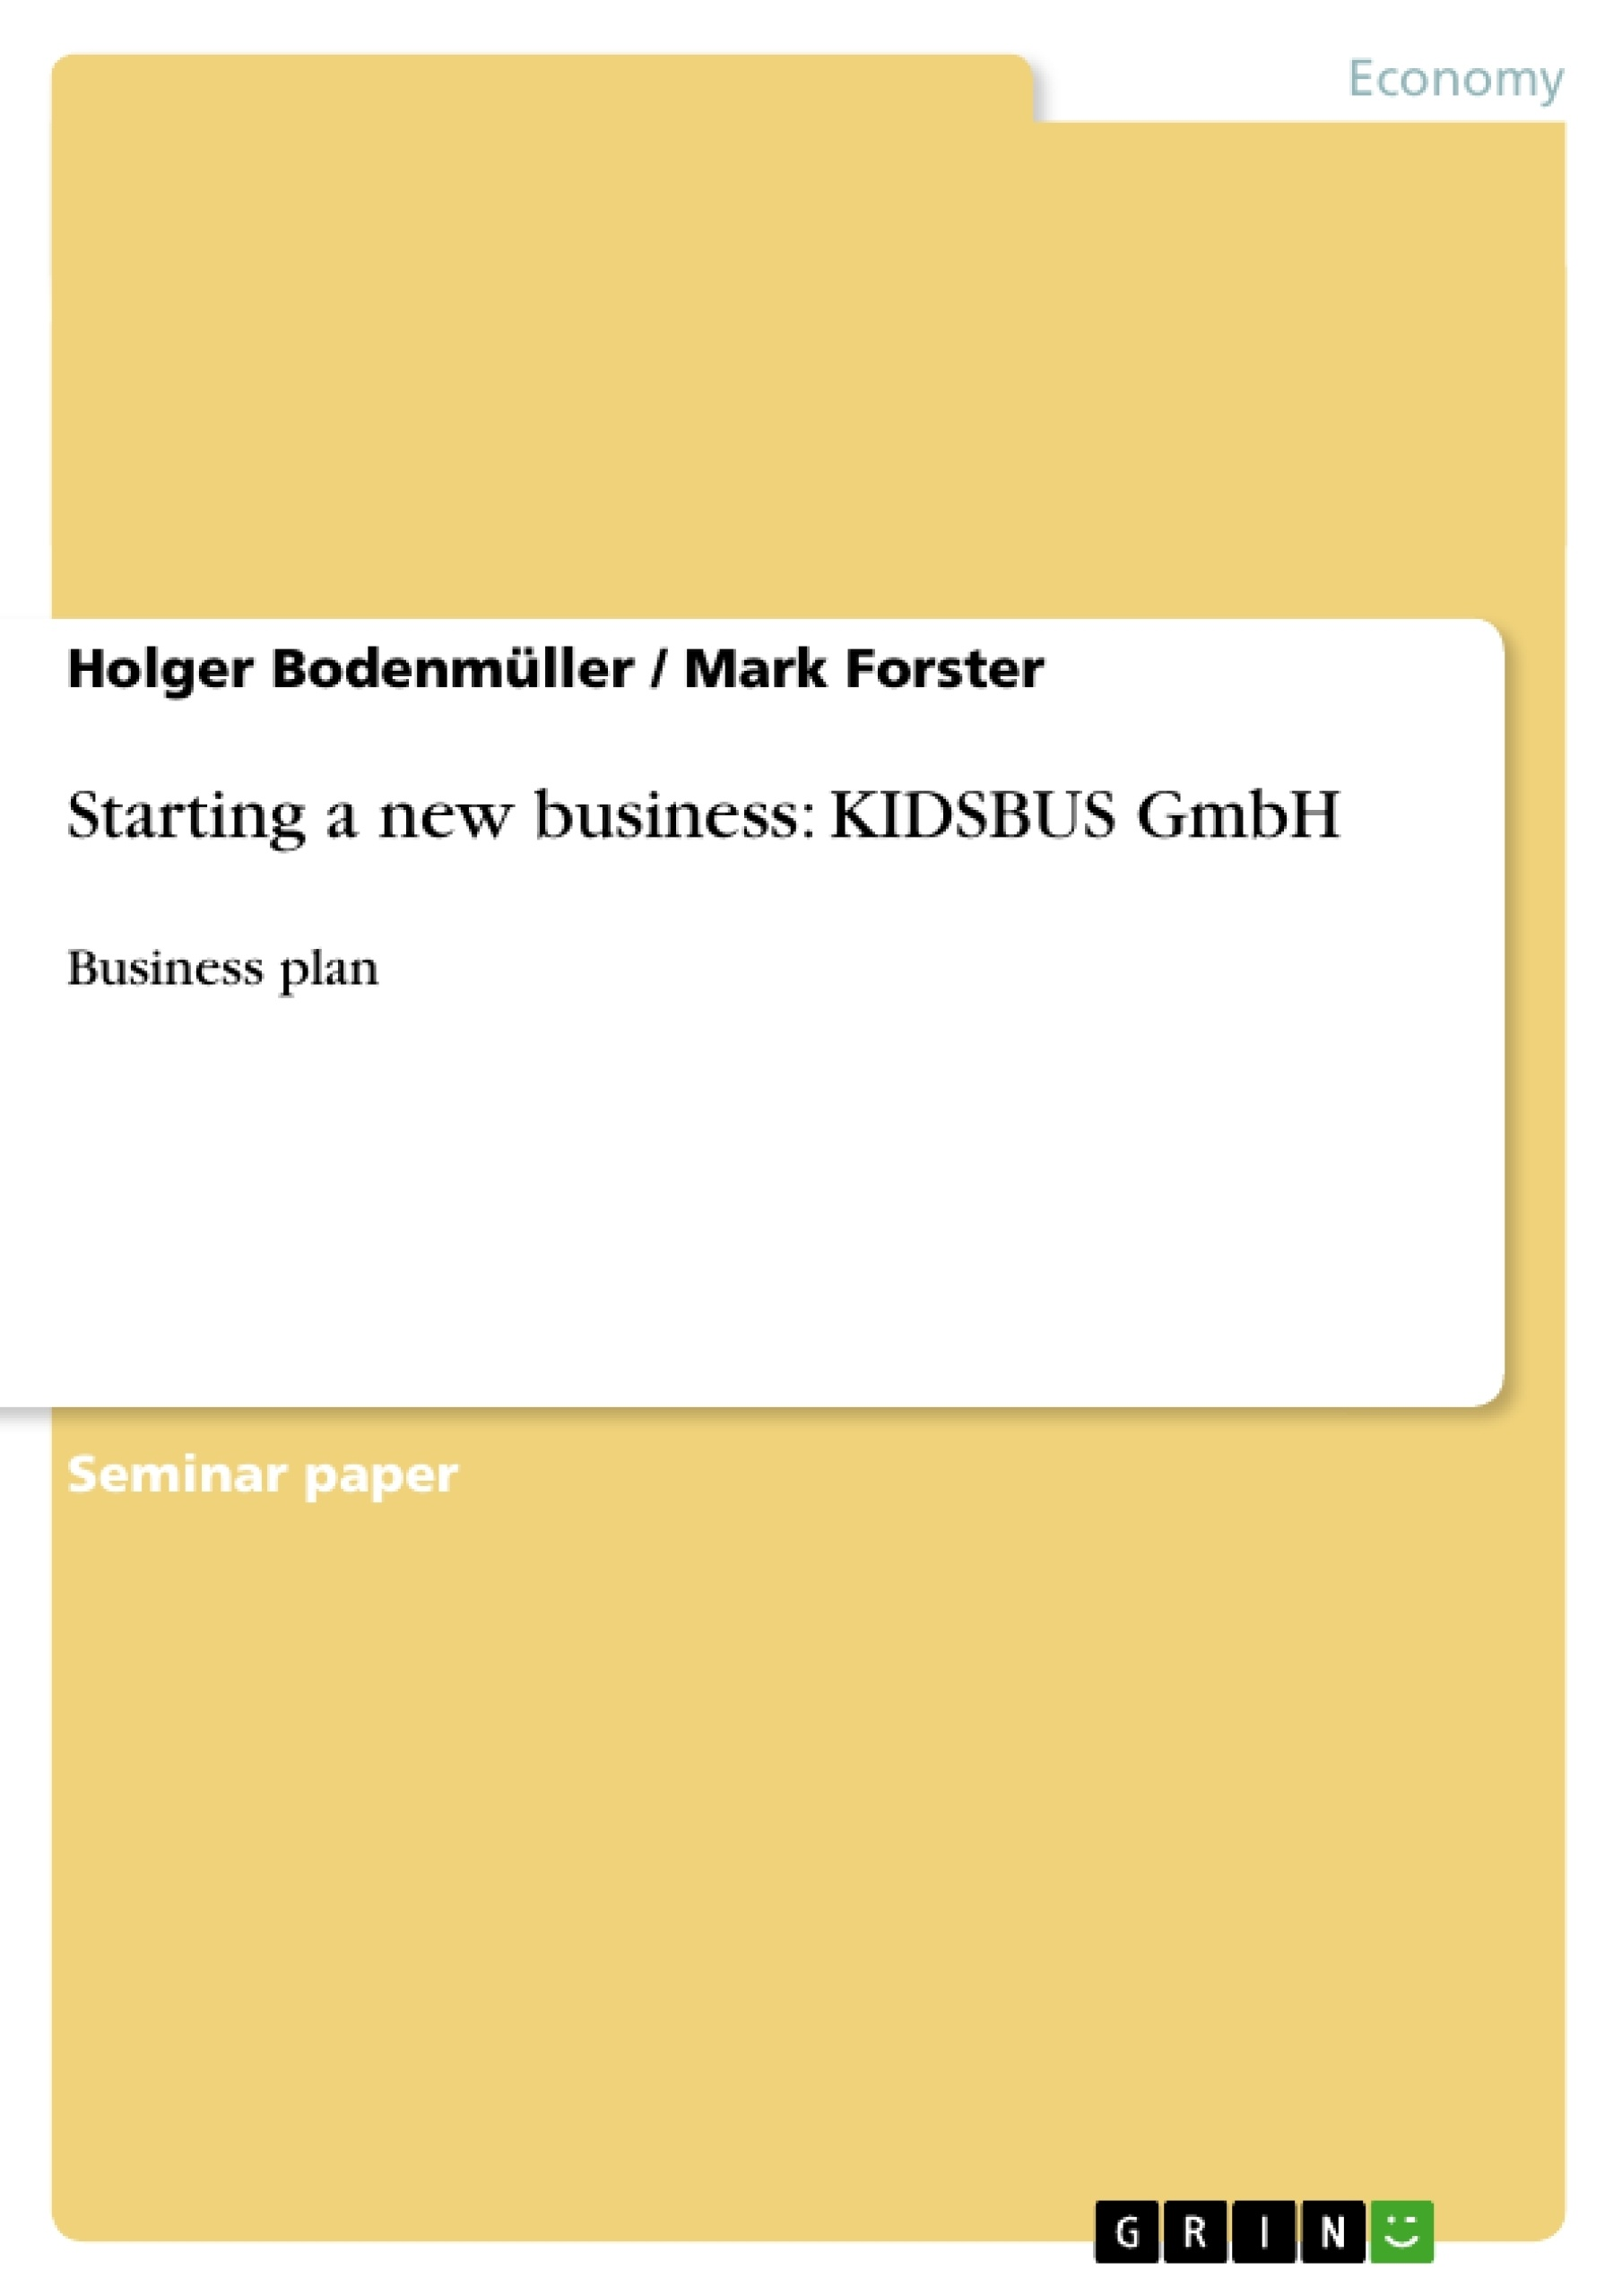 Title: Starting a new business: KIDSBUS GmbH